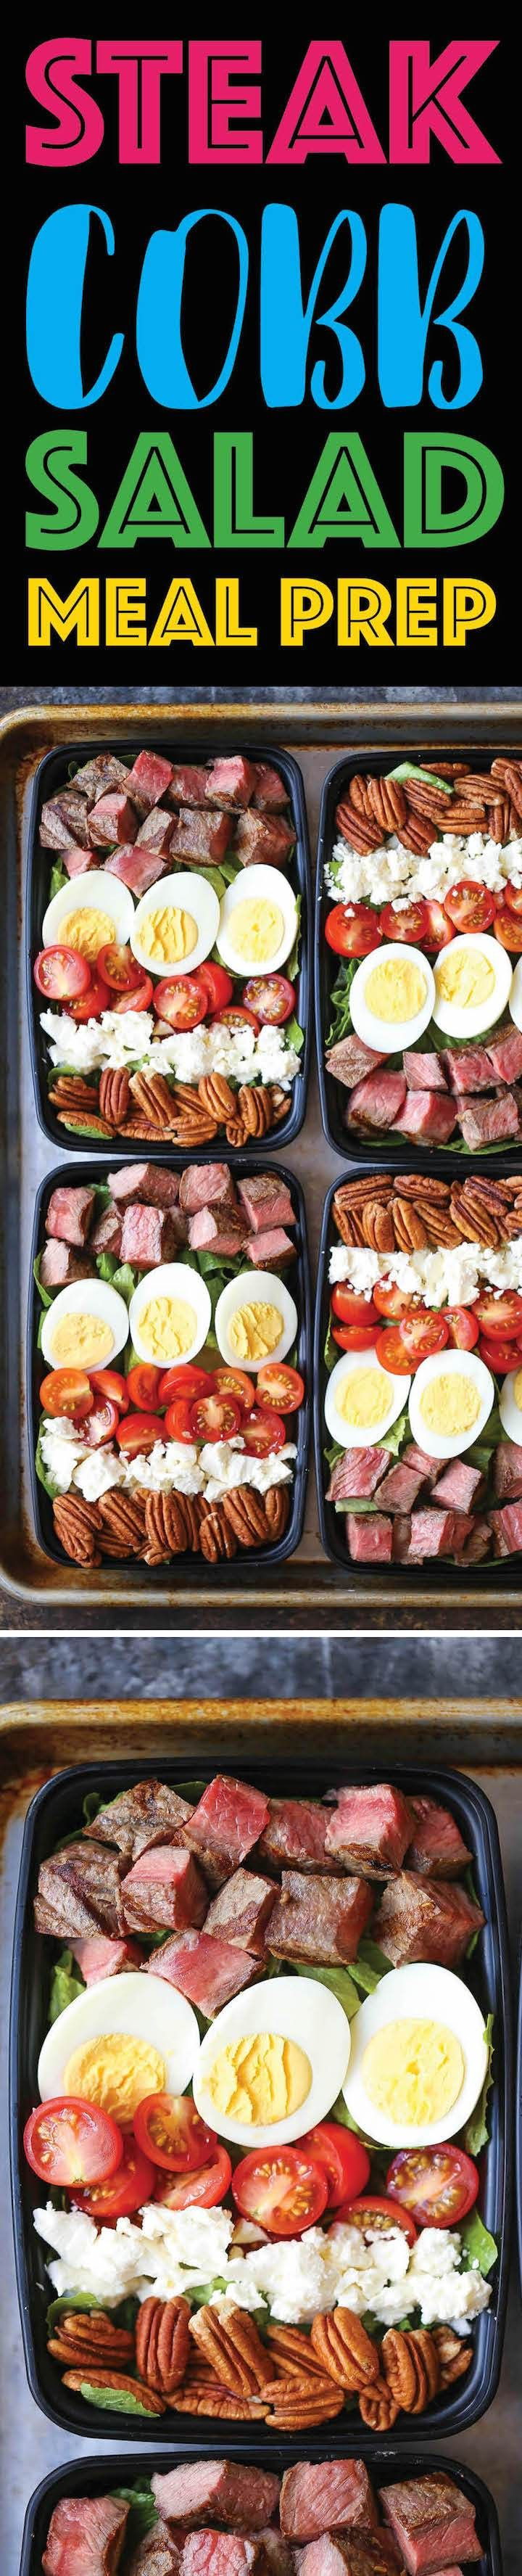 Steak Cobb Salad Meal Prep